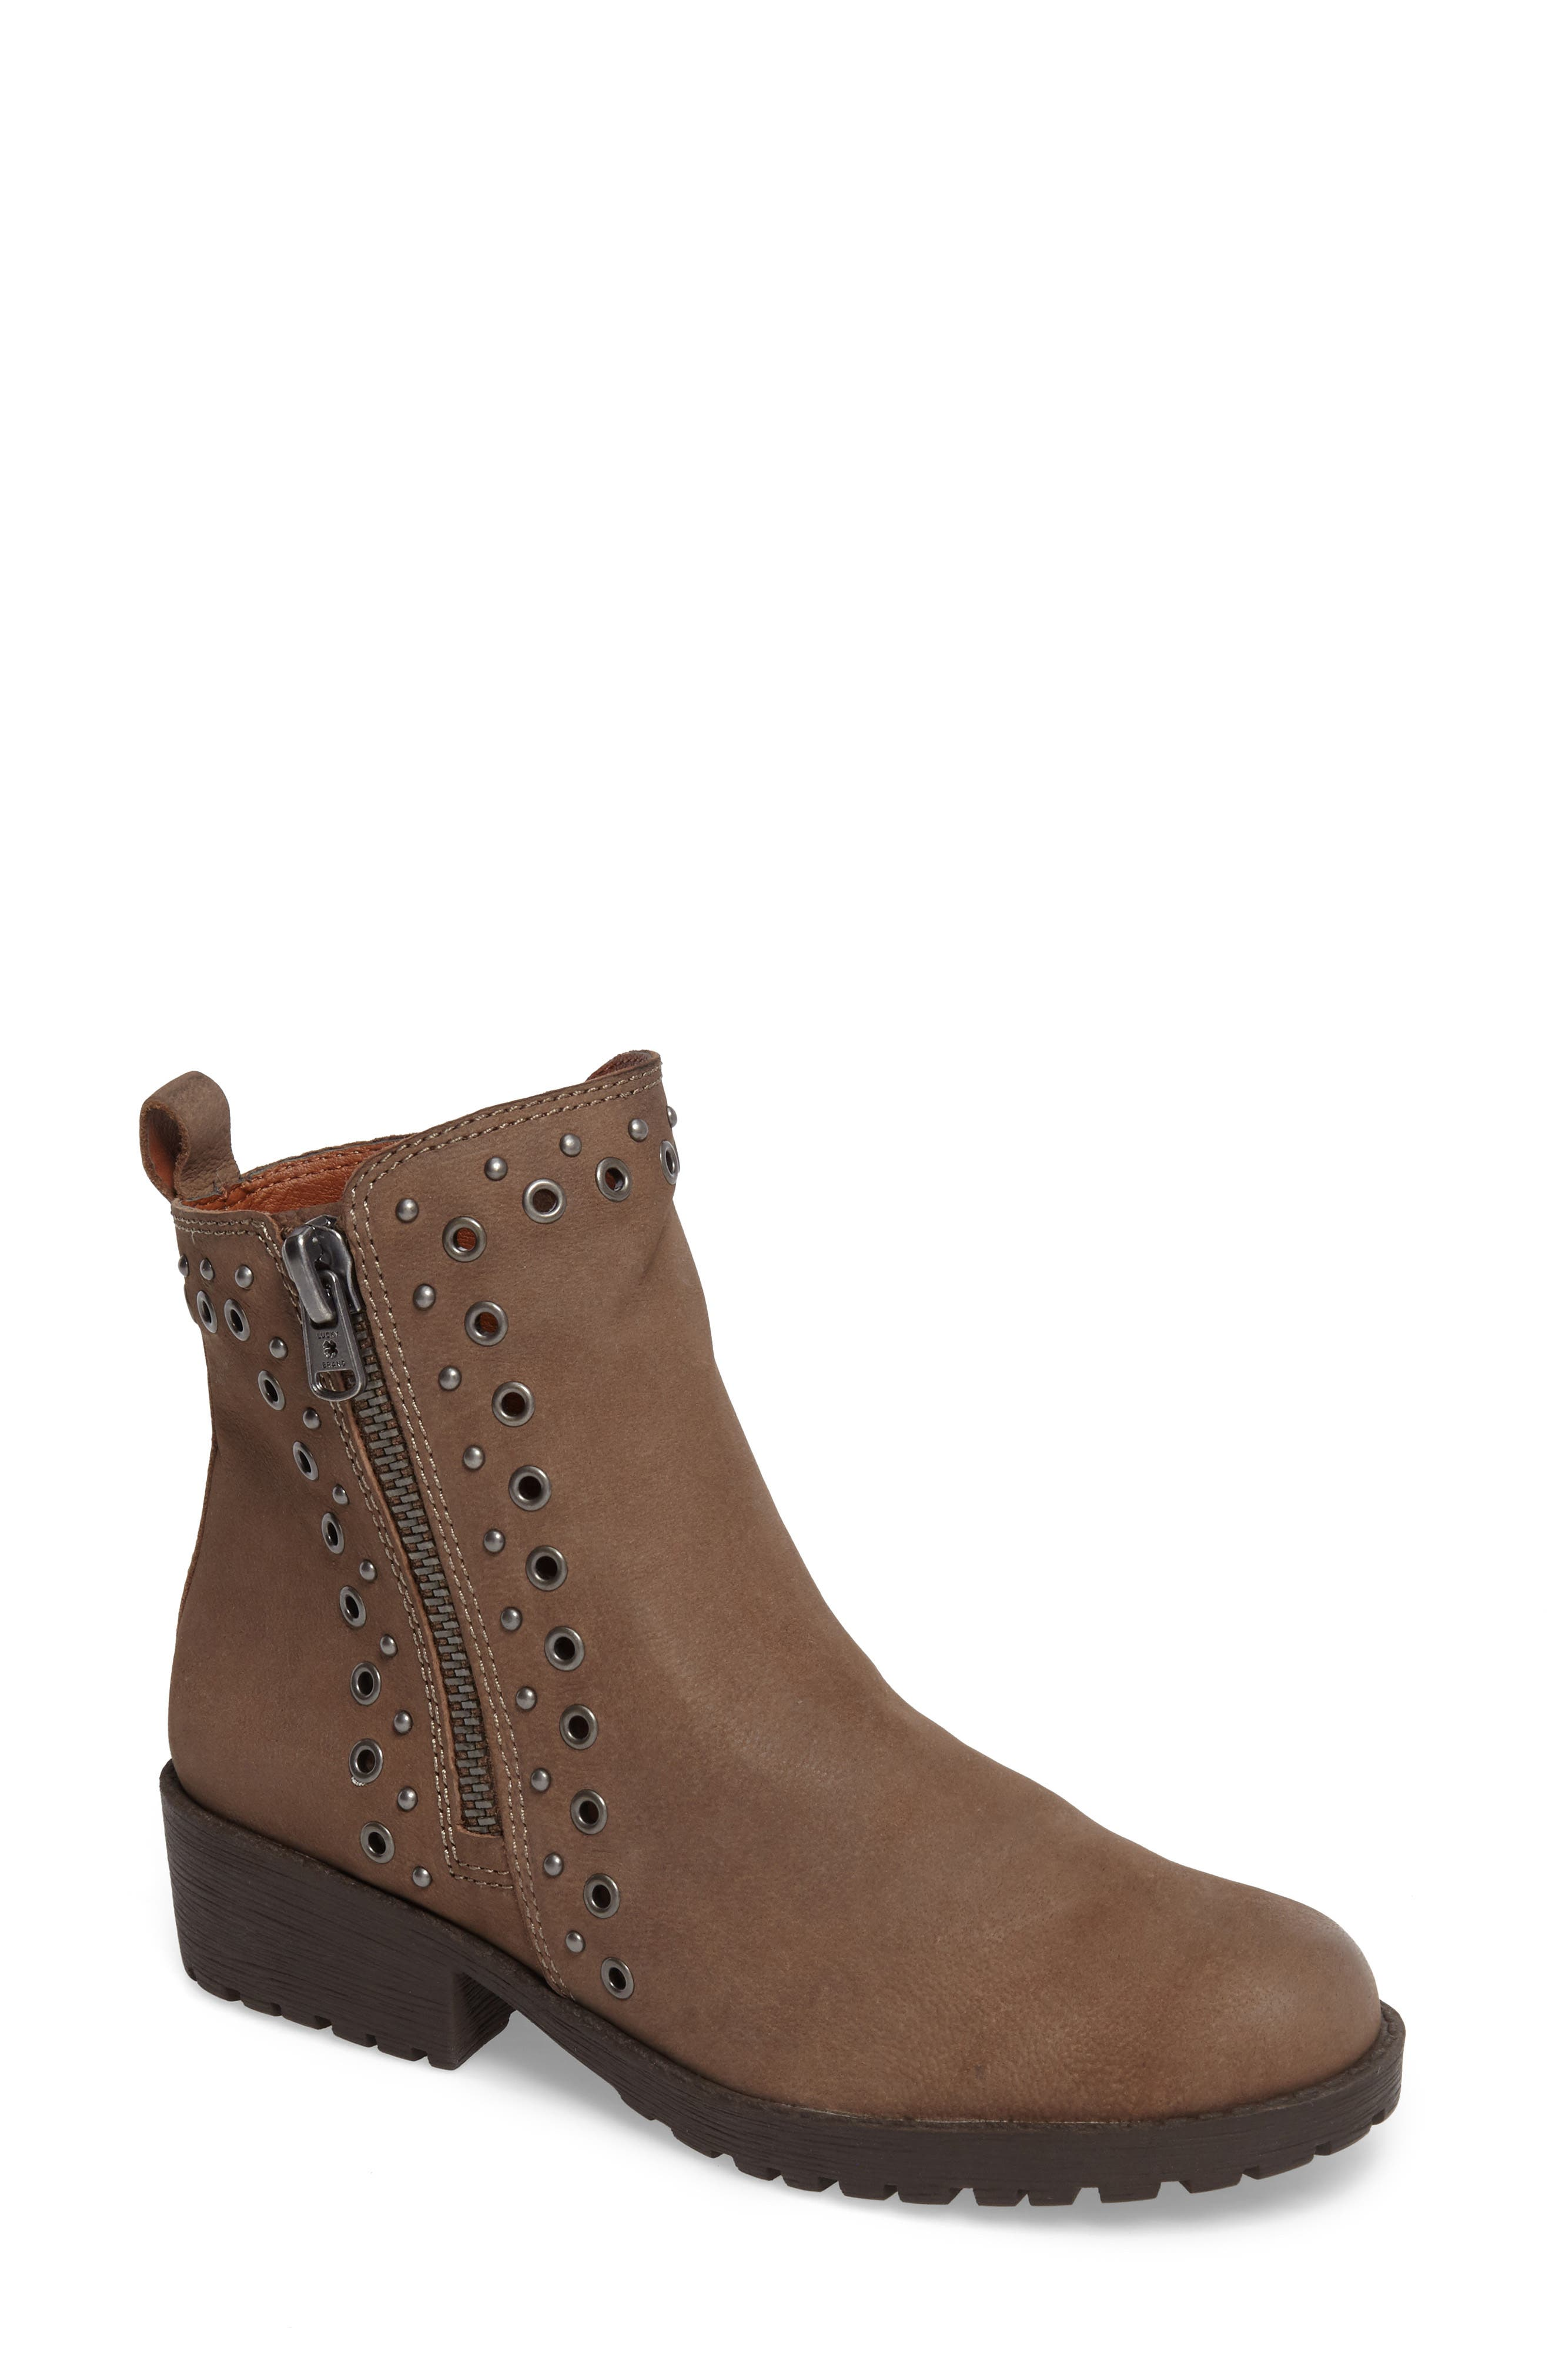 Hannie Embellished Bootie,                         Main,                         color, Brindle Leather